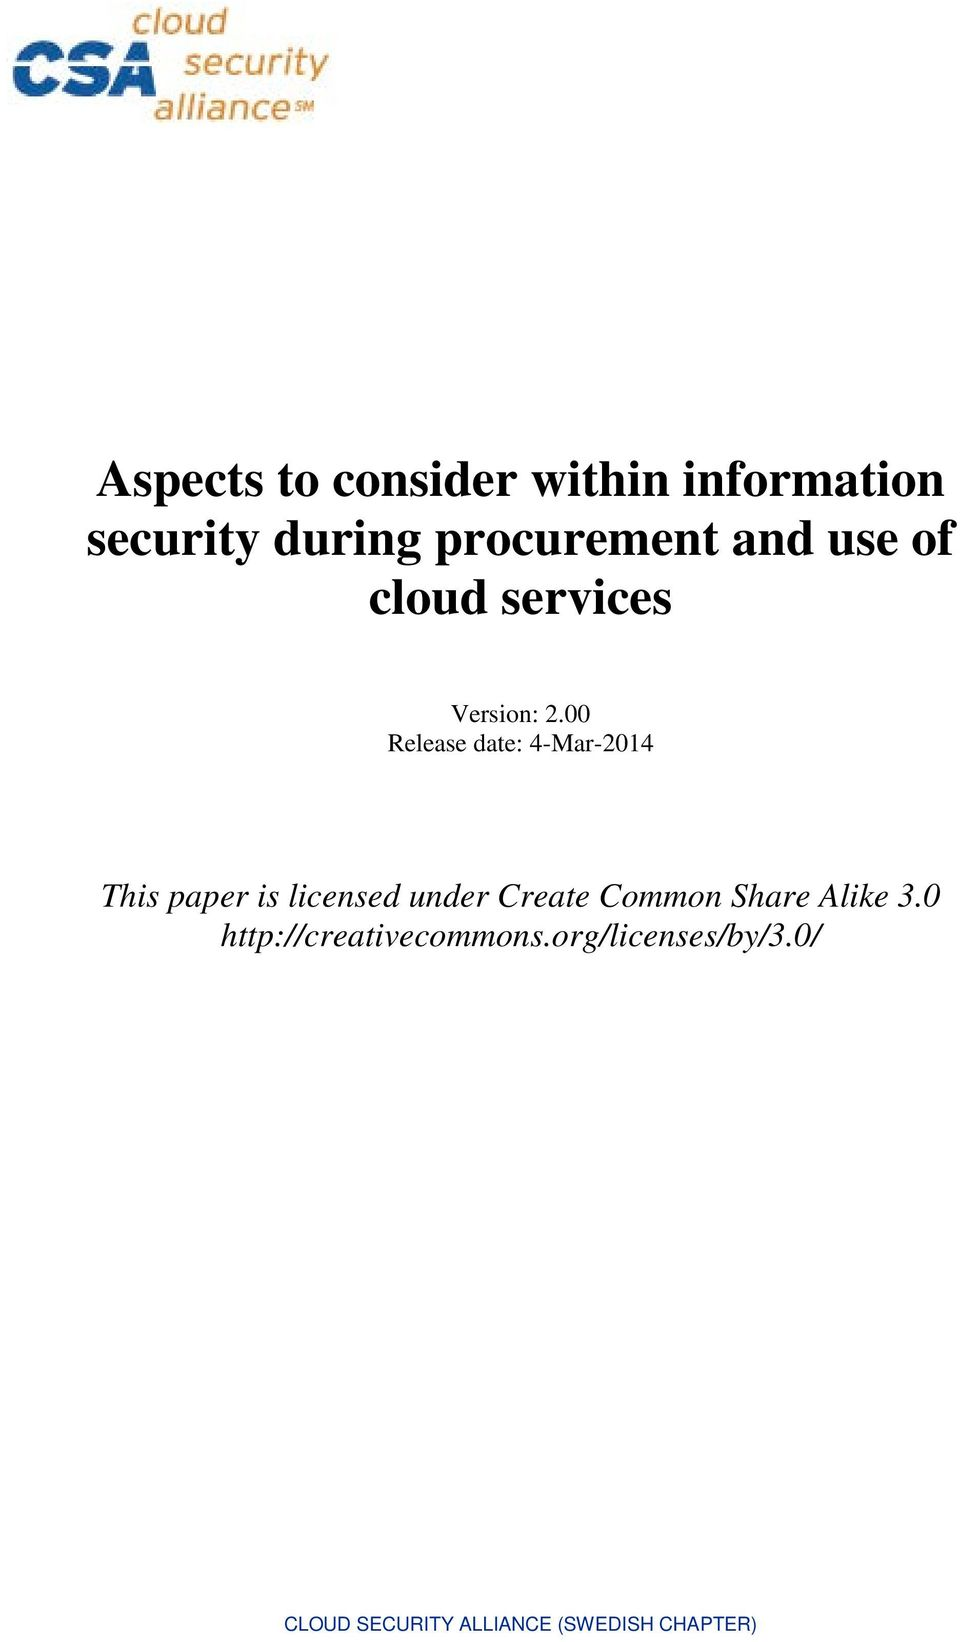 00 Release date: 4-Mar-2014 This paper is licensed under